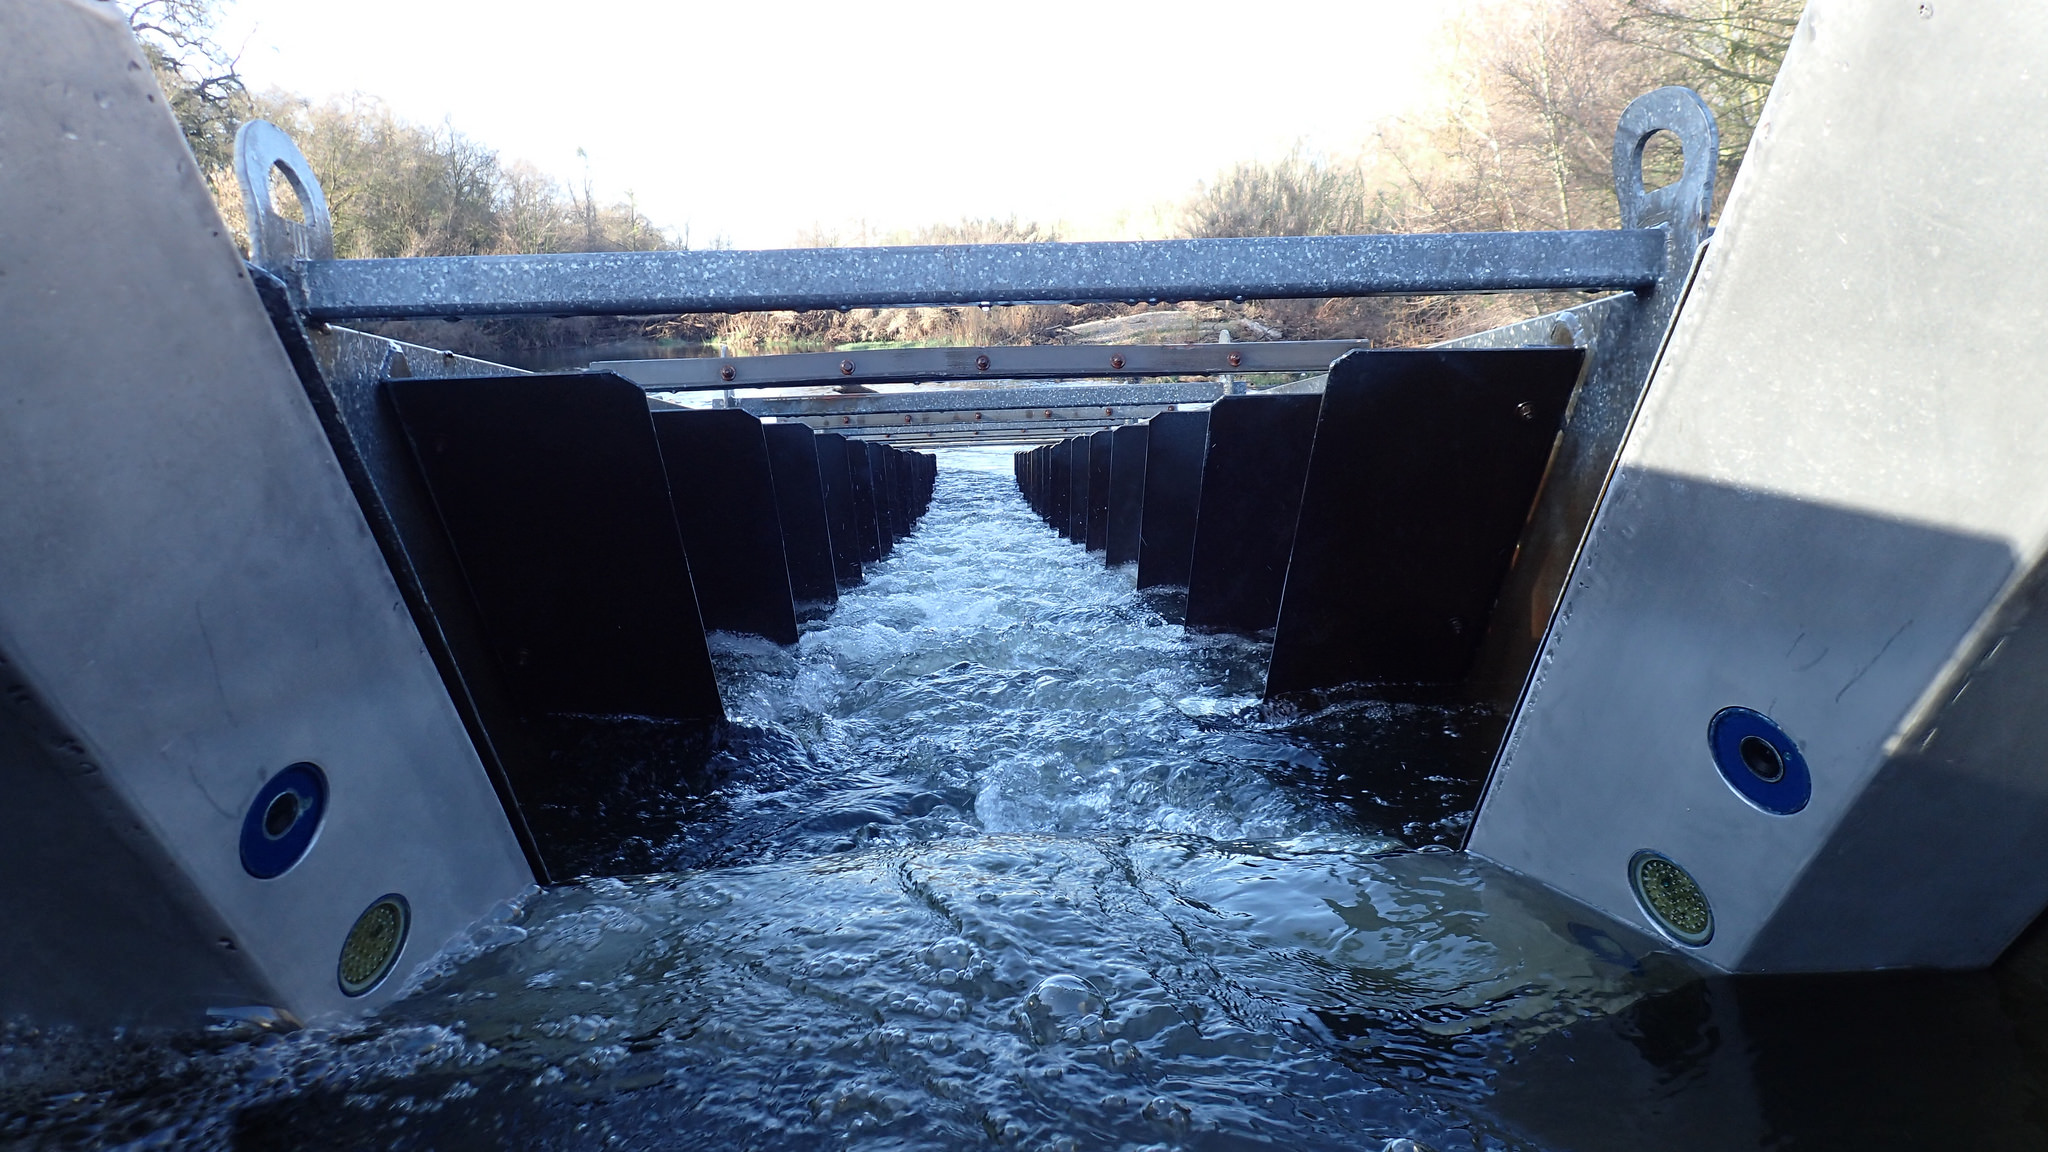 Fish ladder with cameras exposed